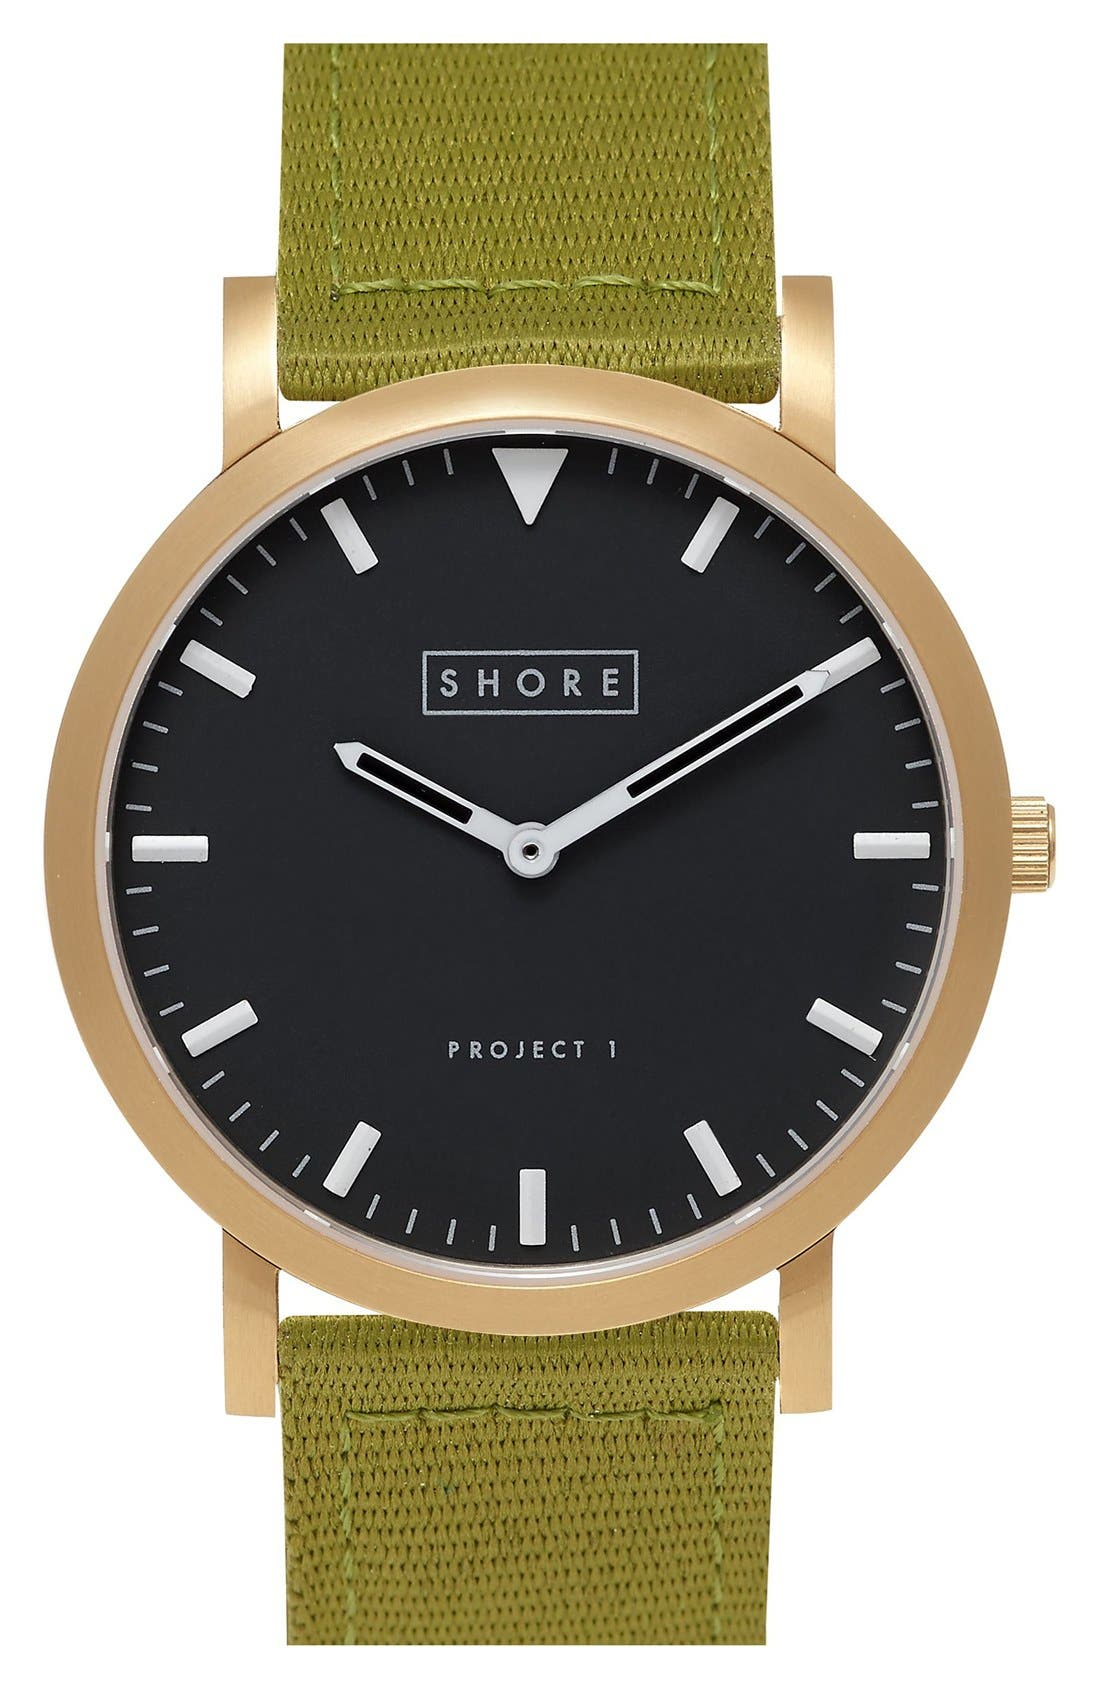 Alternate Image 1 Selected - Shore Projects 'Project 1' Leather & Nylon Strap Watch, 39mm